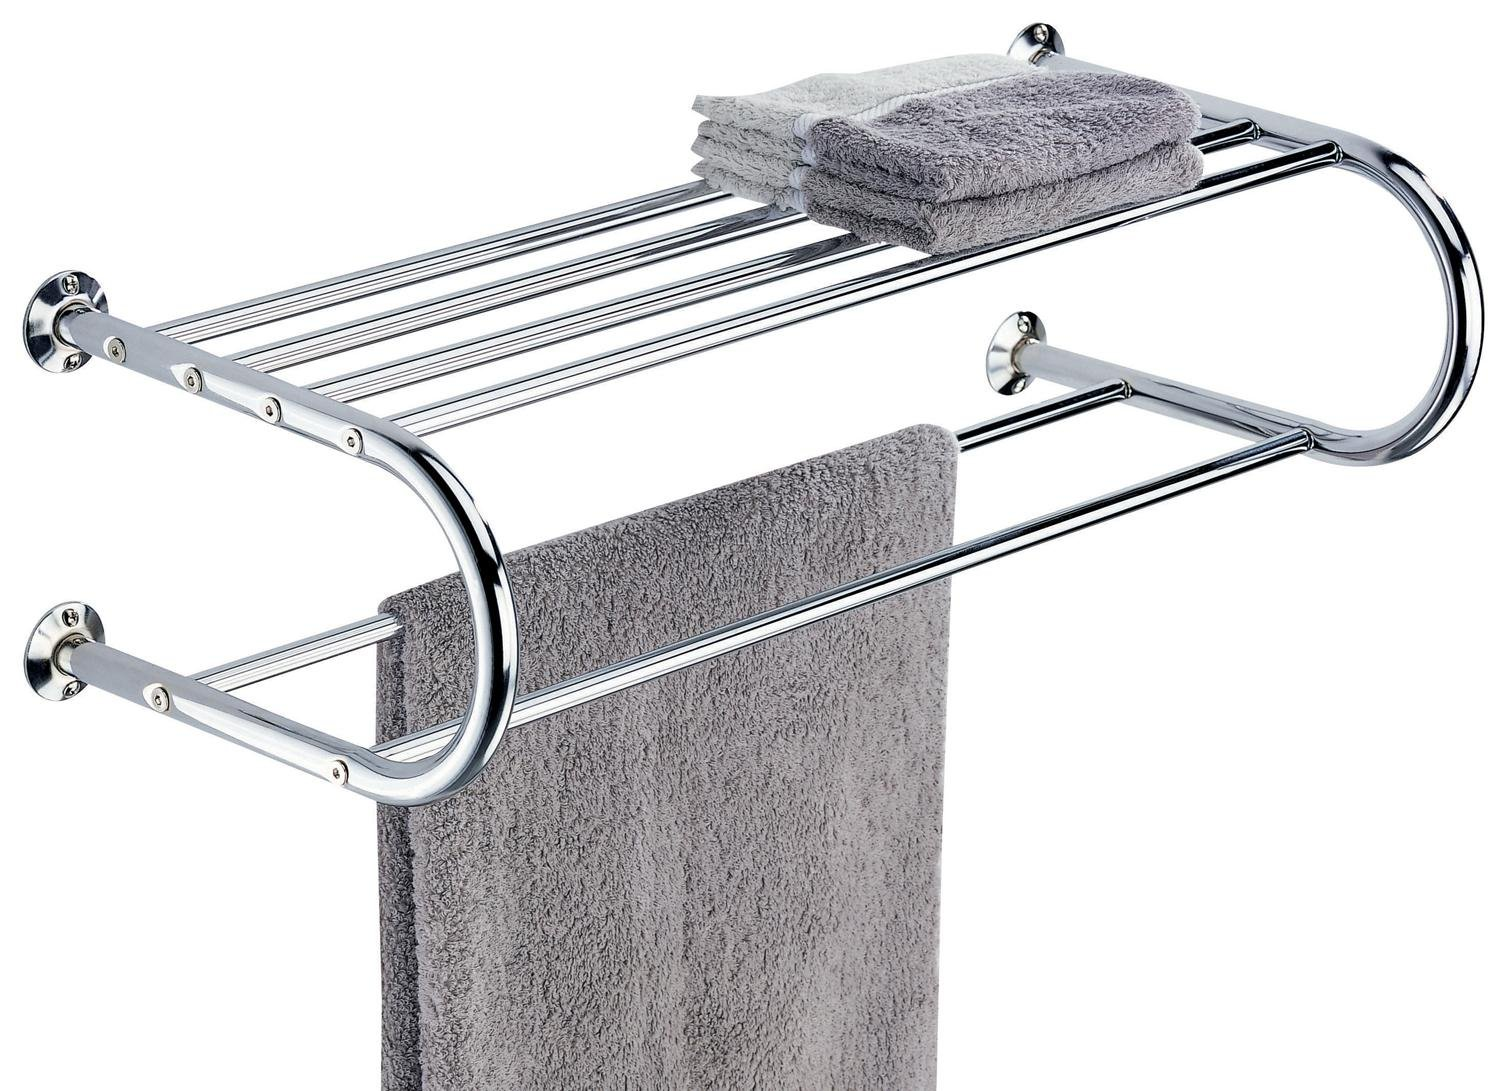 Bathroom Towel Holder Towel Racks And Holders For Kitchen And Bathroom